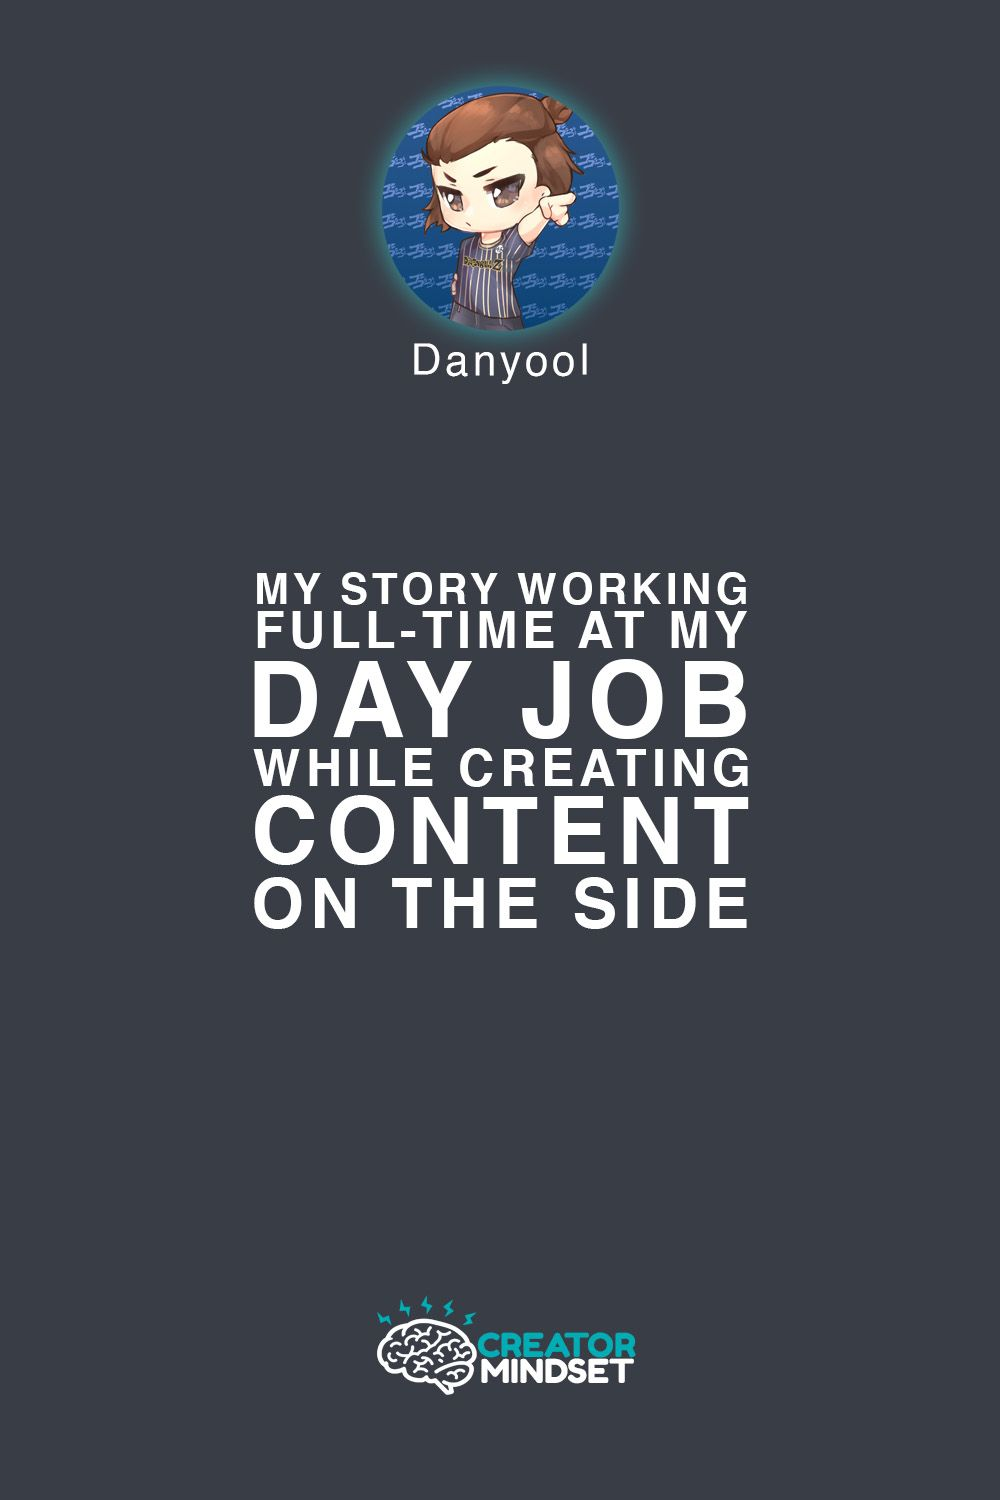 My Story Working Full-Time At My Day Job While Creating Content On The Side.